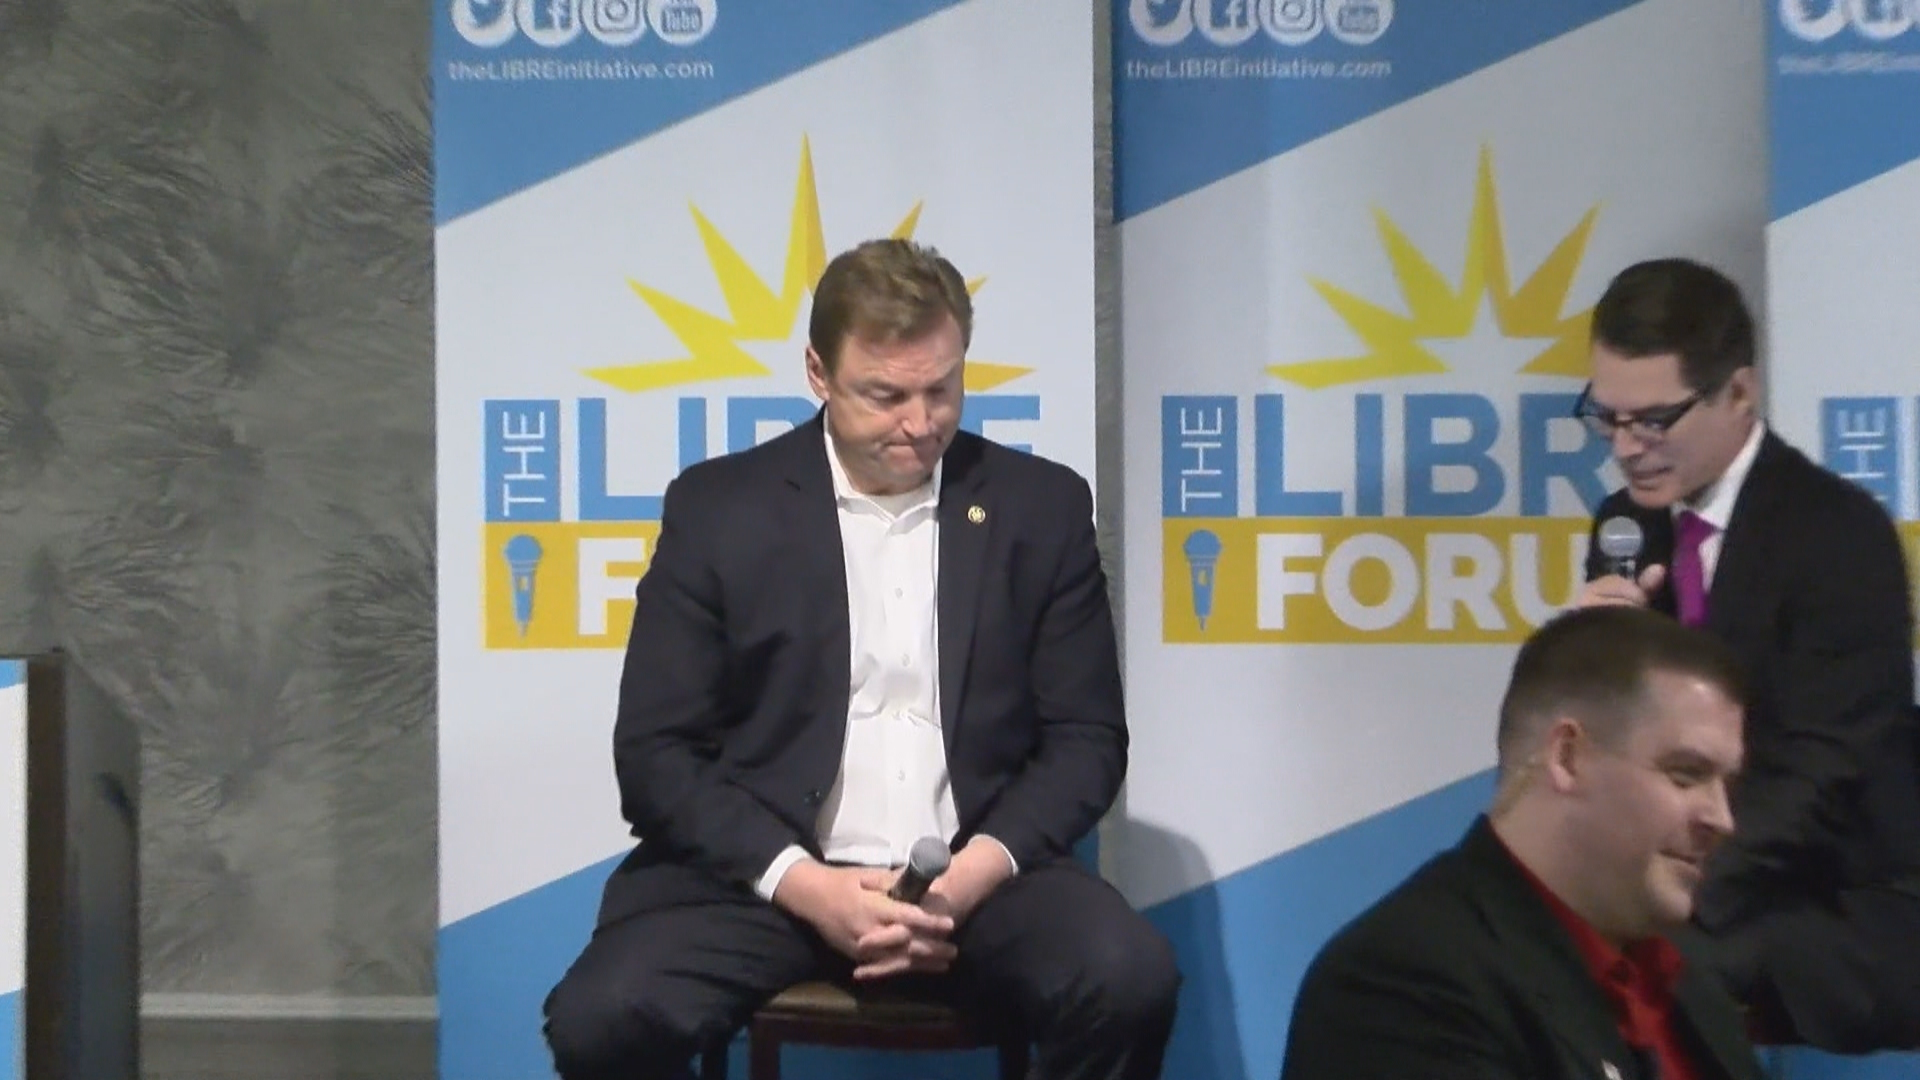 U.S. Sen. Dean Heller participates Saturday, December 2, 2017, in The LIBRE Initiative's Forum series at Palace Station in Las Vegas. (Corwin Hall/KSNV)